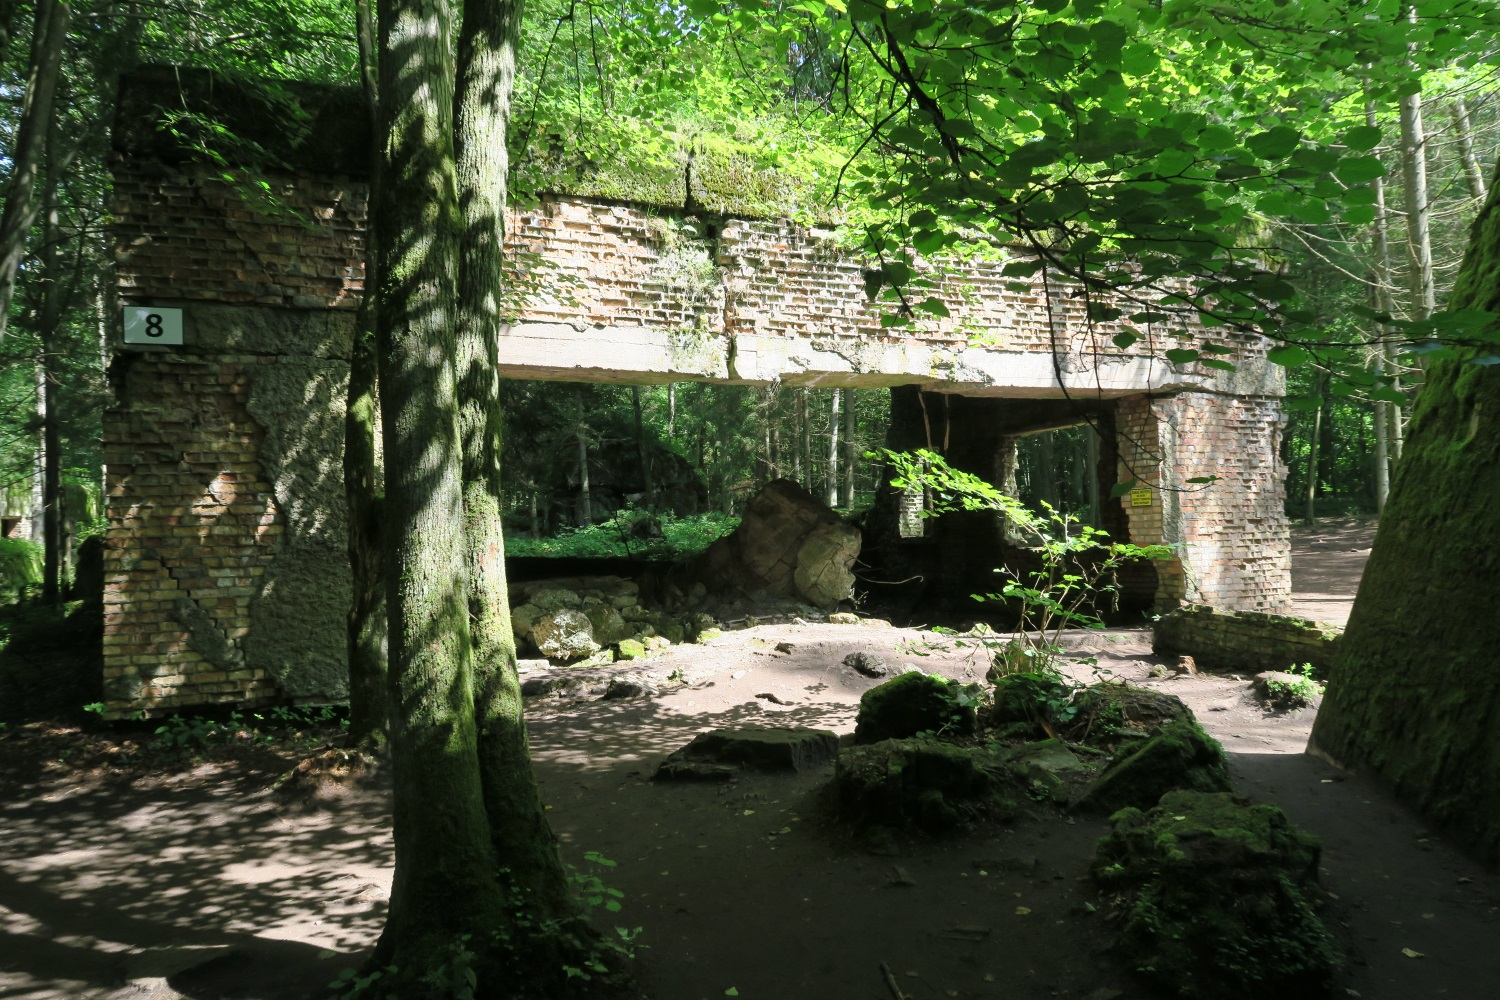 The Wolf's Lair - Hitler's headquarters and planning area for his leaders here in Poland. - one of the buildings there - not his main bunker.